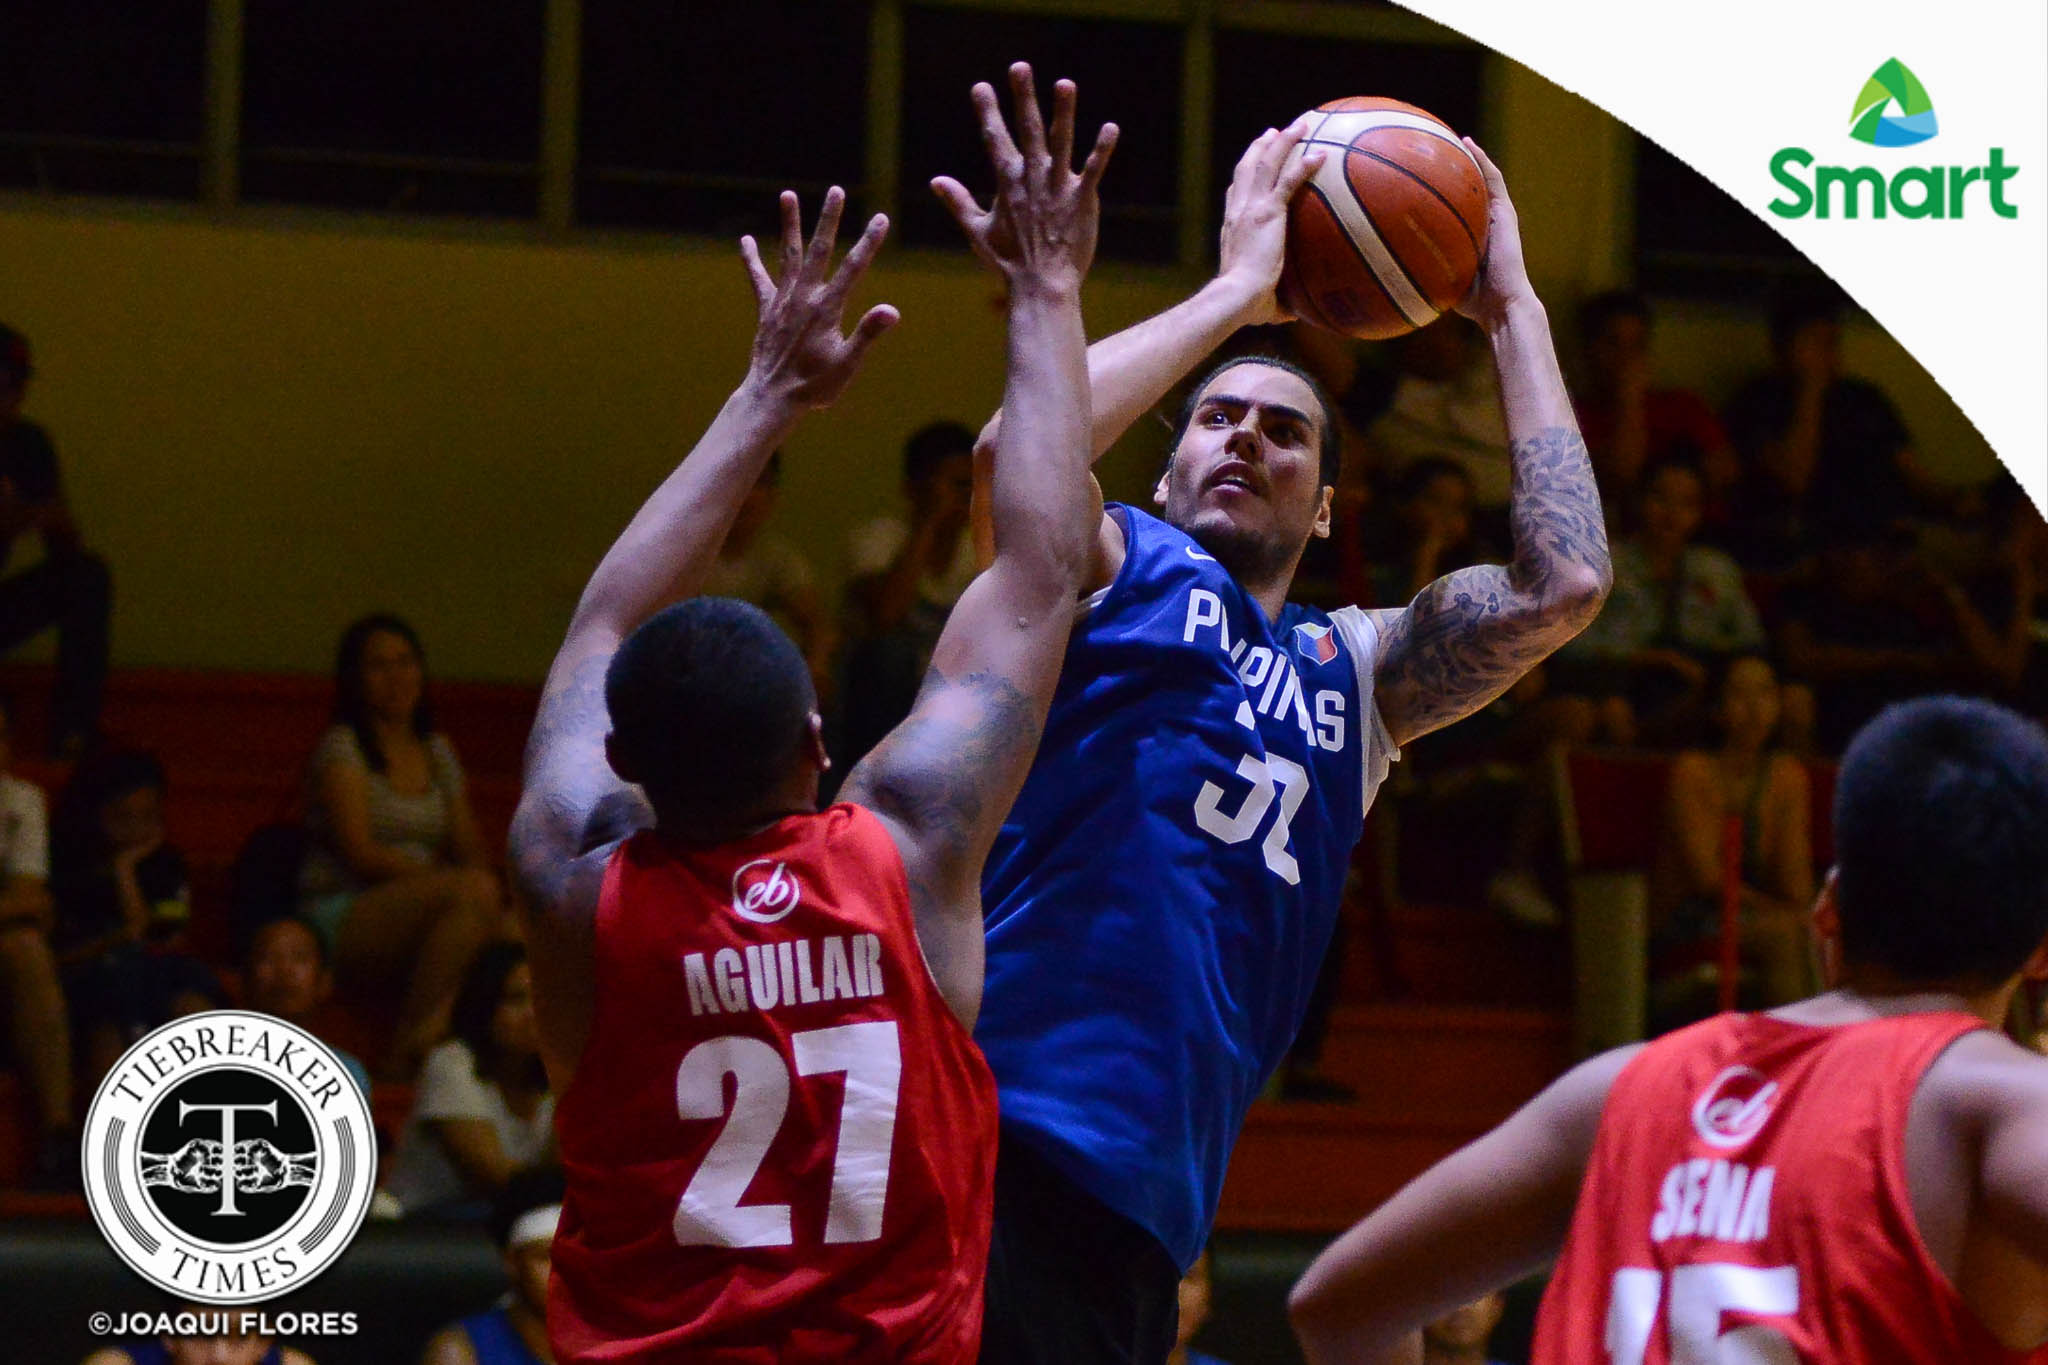 Philippine Sports News - Tiebreaker Times Hong Kong Eastern believes Christian Standhardinger will finish ABL season ABL Basketball News PBA  PBA Season 43 Hong Kong Eastern Long Lions Christian Standhardinger 2017-18 ABL Season 2017 PBA Draft